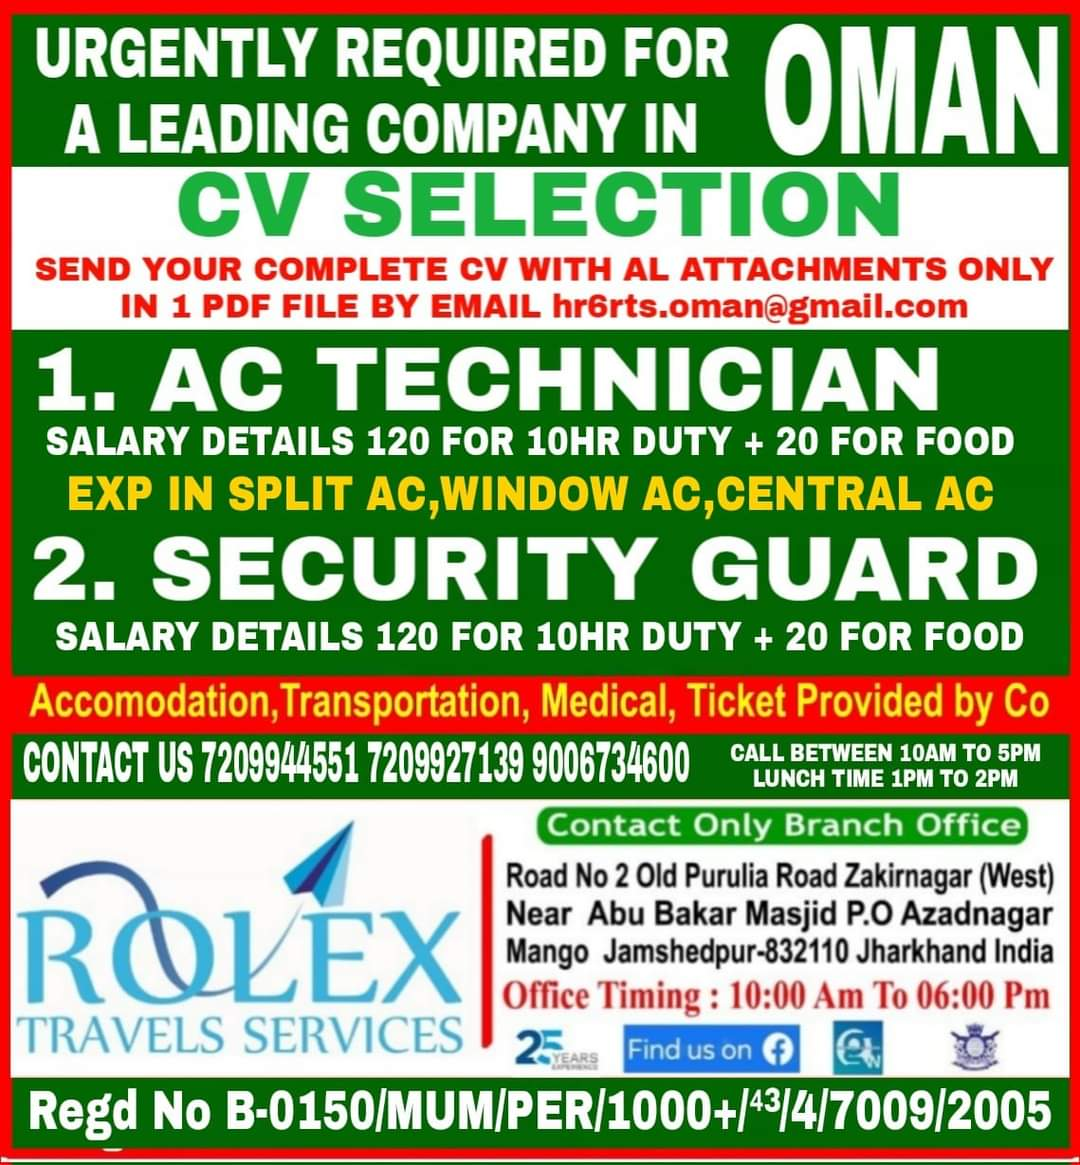 URGENTLY REQUIRED FOR A LEADING COMPANY IN-OMAN